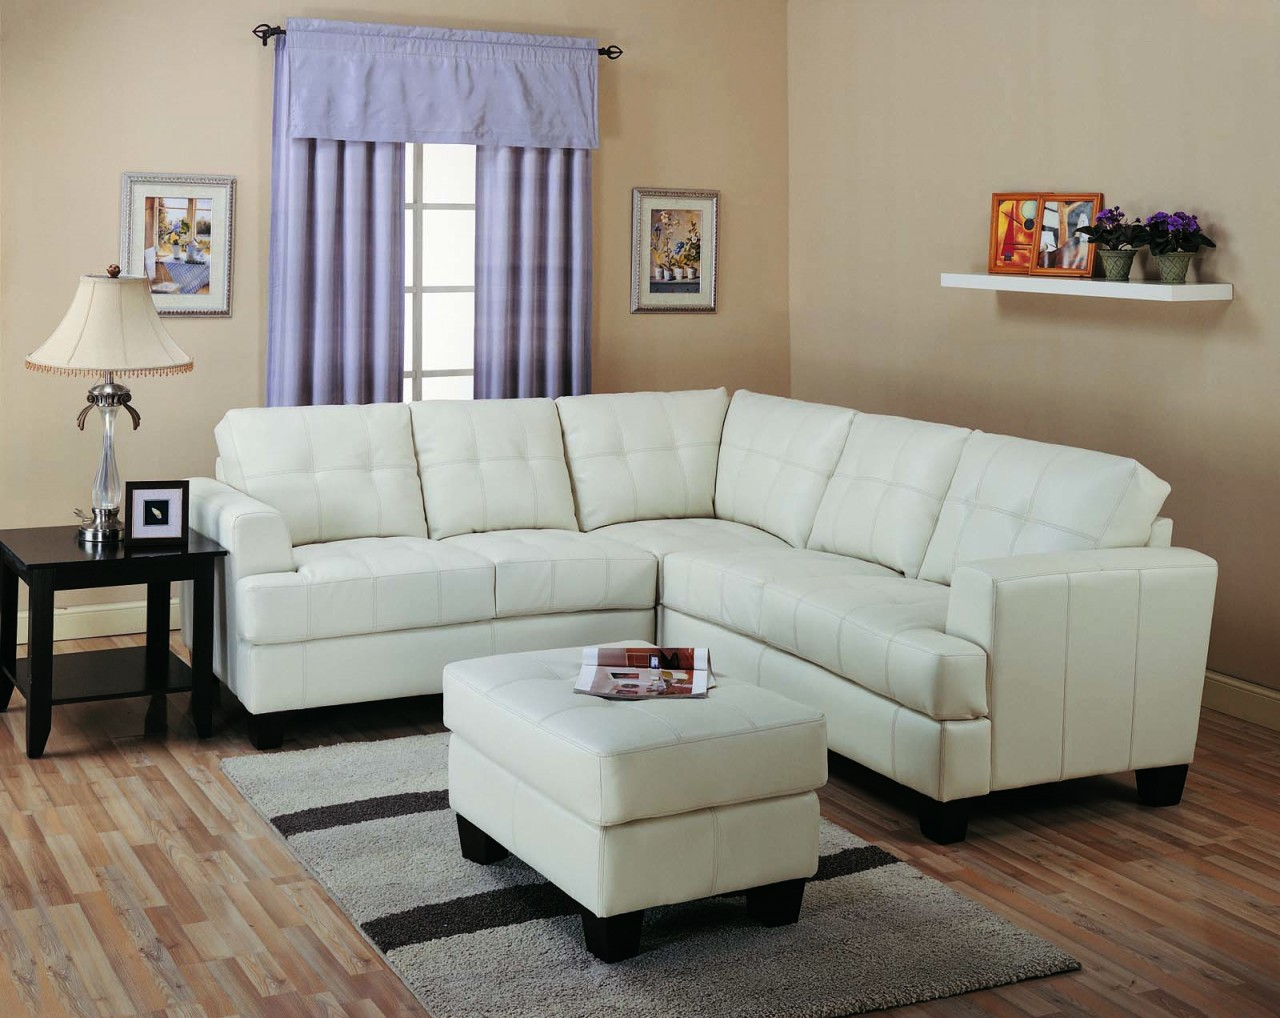 Types of best small sectional couches for small living rooms homesfeed - Modular sectional sofas for small spaces decoration ...